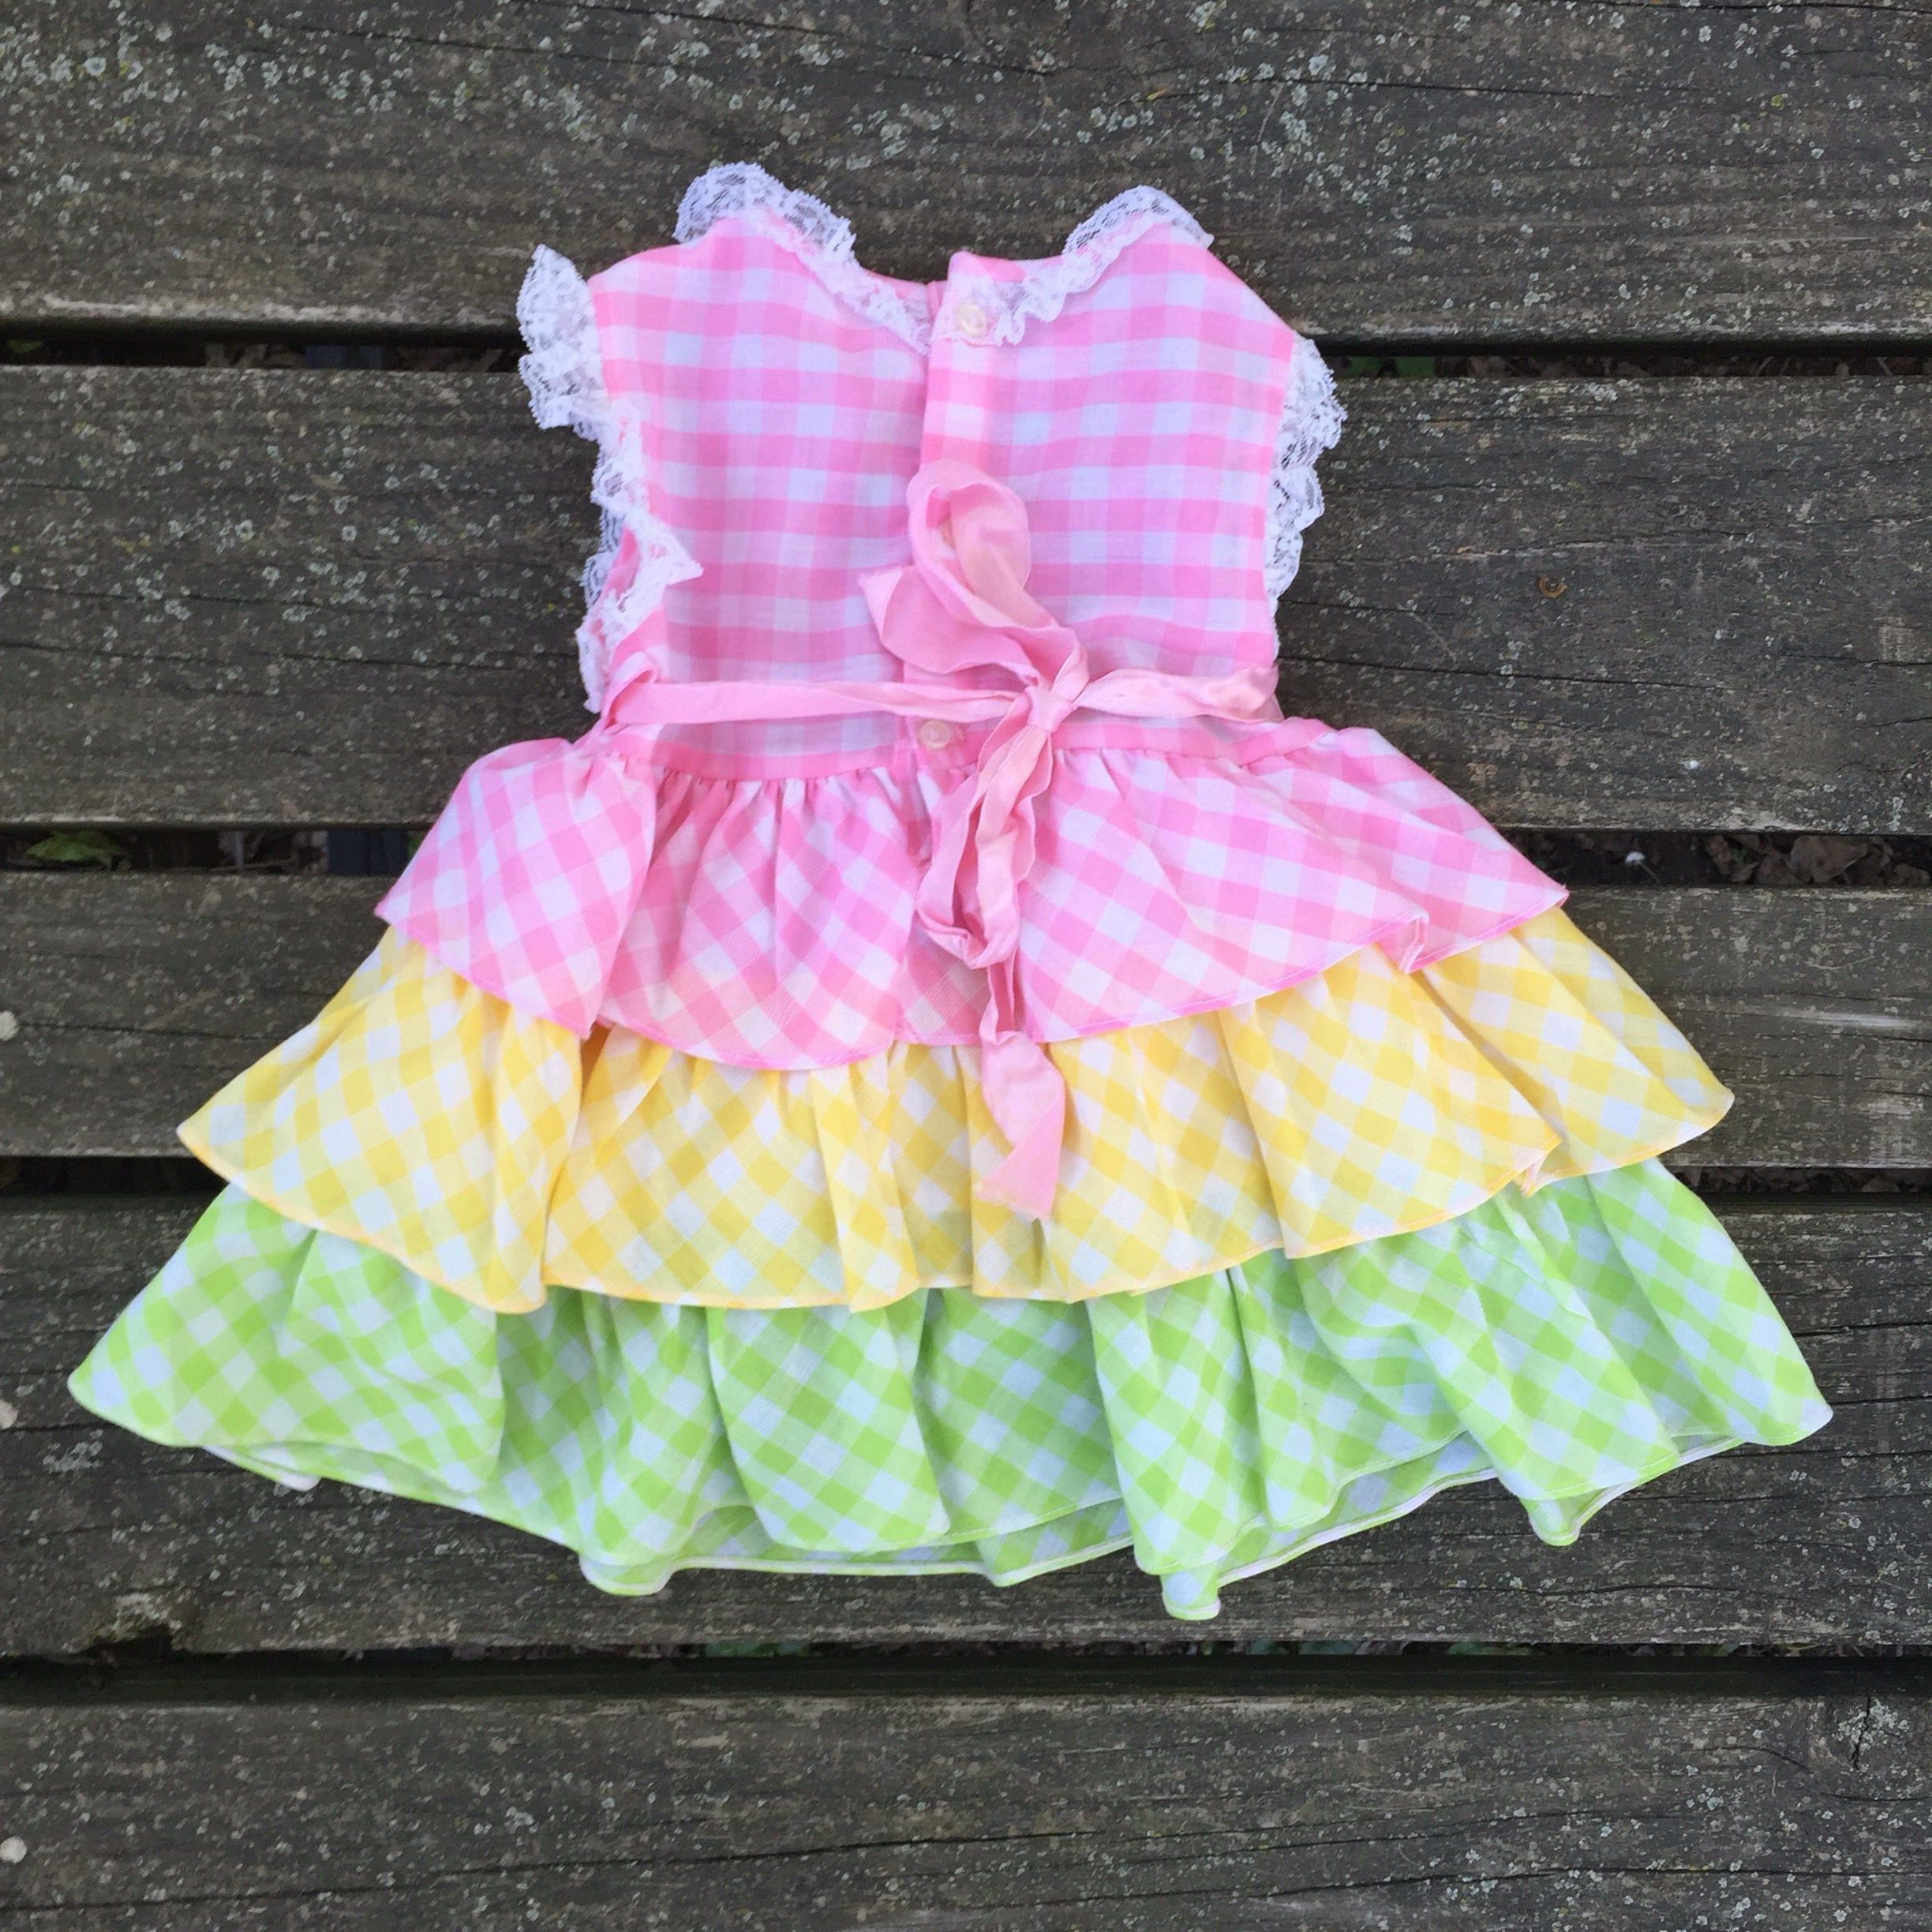 Vintage Size 2 Dress Ruffle Checkered Plaid Nannette Infant Baby